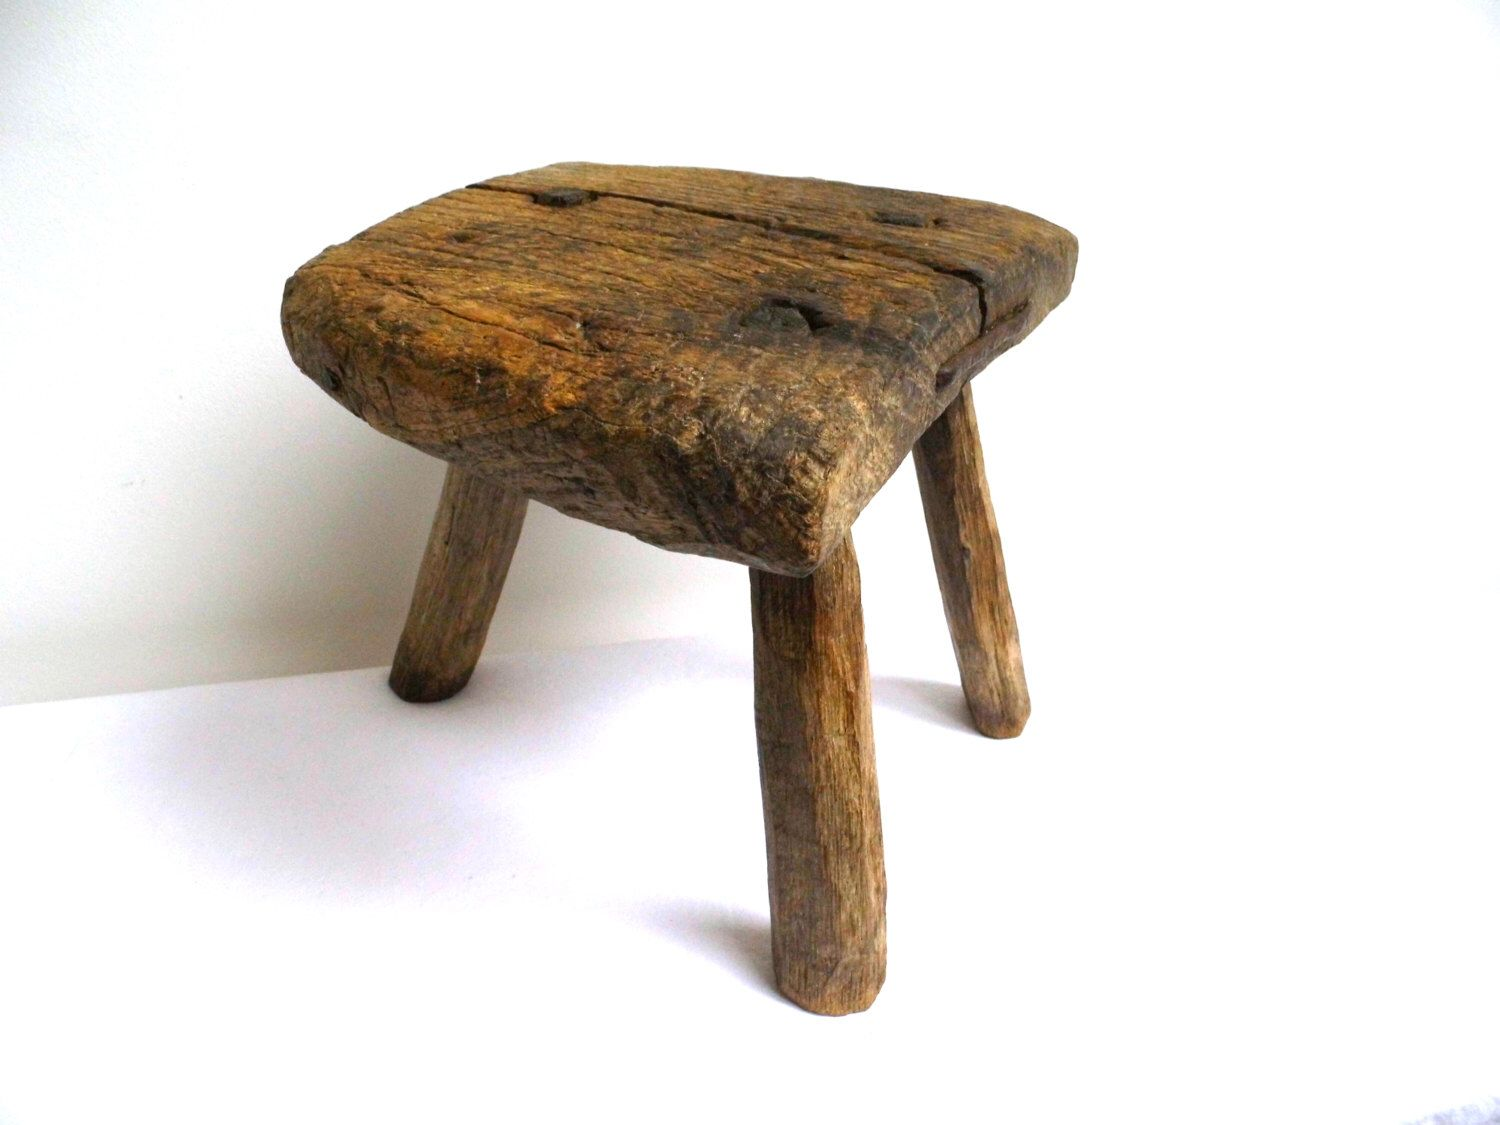 Milking Bench Part - 25: OOAK Antique Walnut Farmhouse Milking Stool Rustic Primitive Foot Three  Legged Vintage Wooden Handmade Small Bench